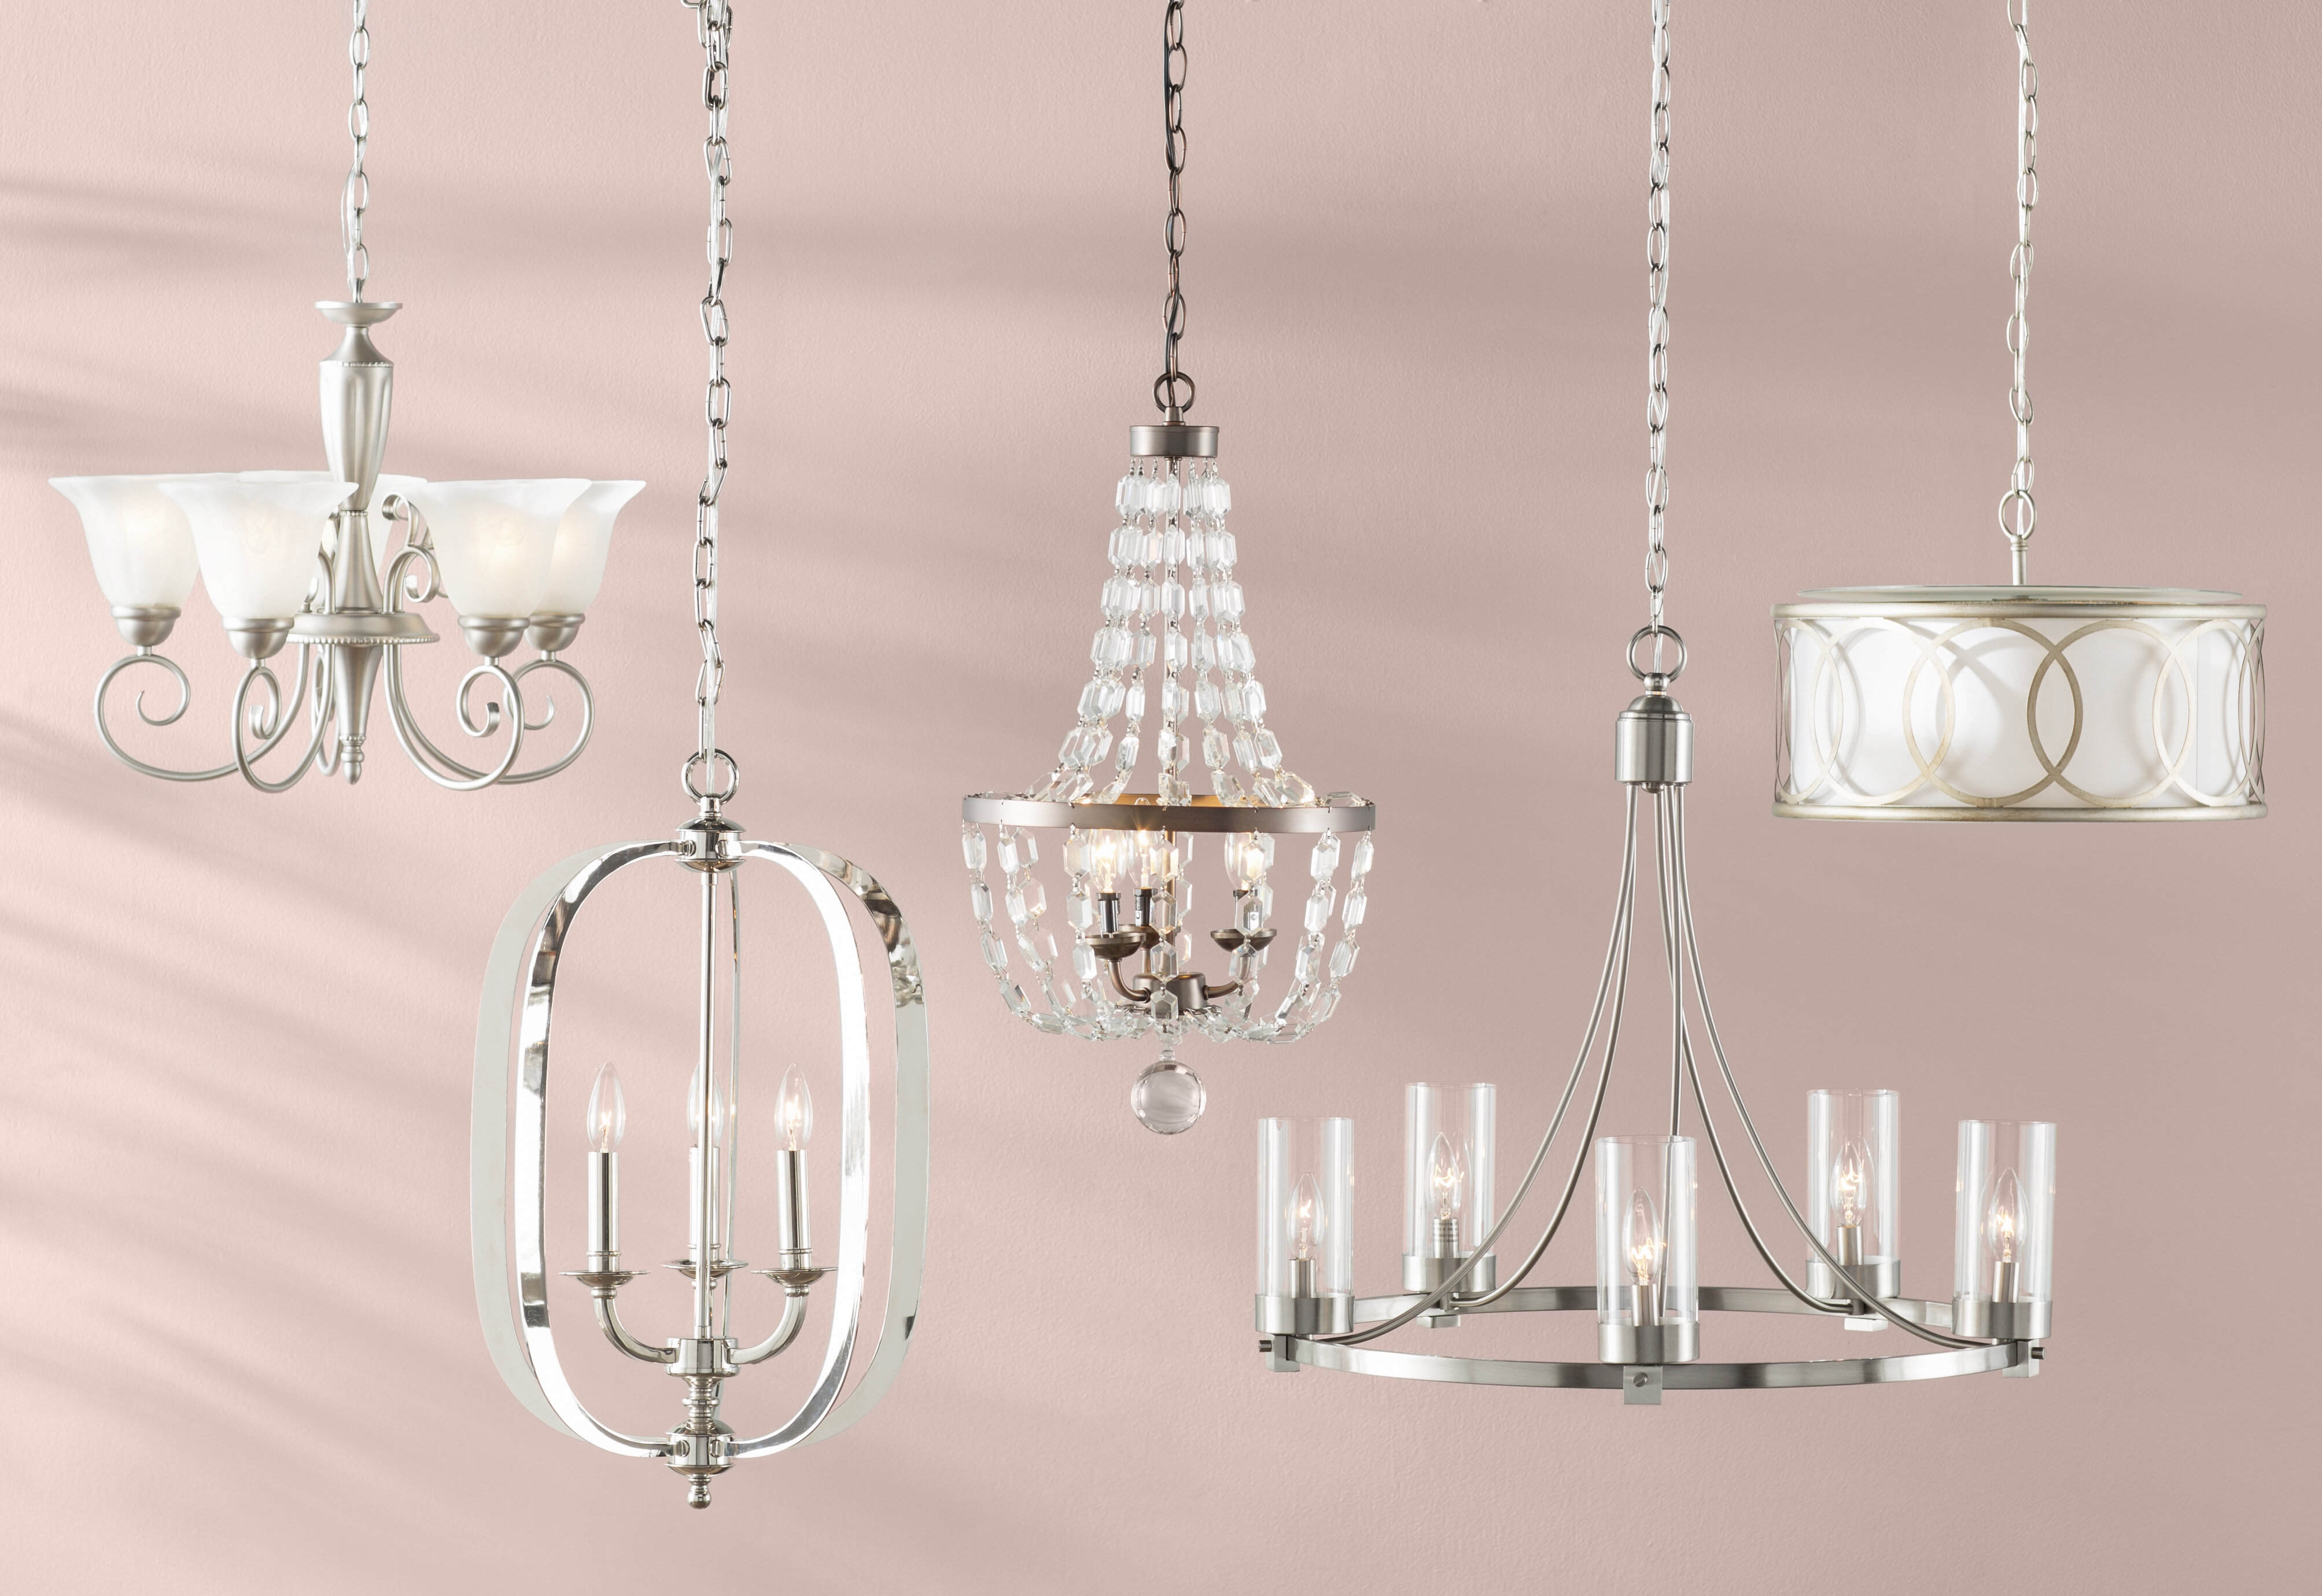 How To Find The Right Chandelier Size And Where To Place It